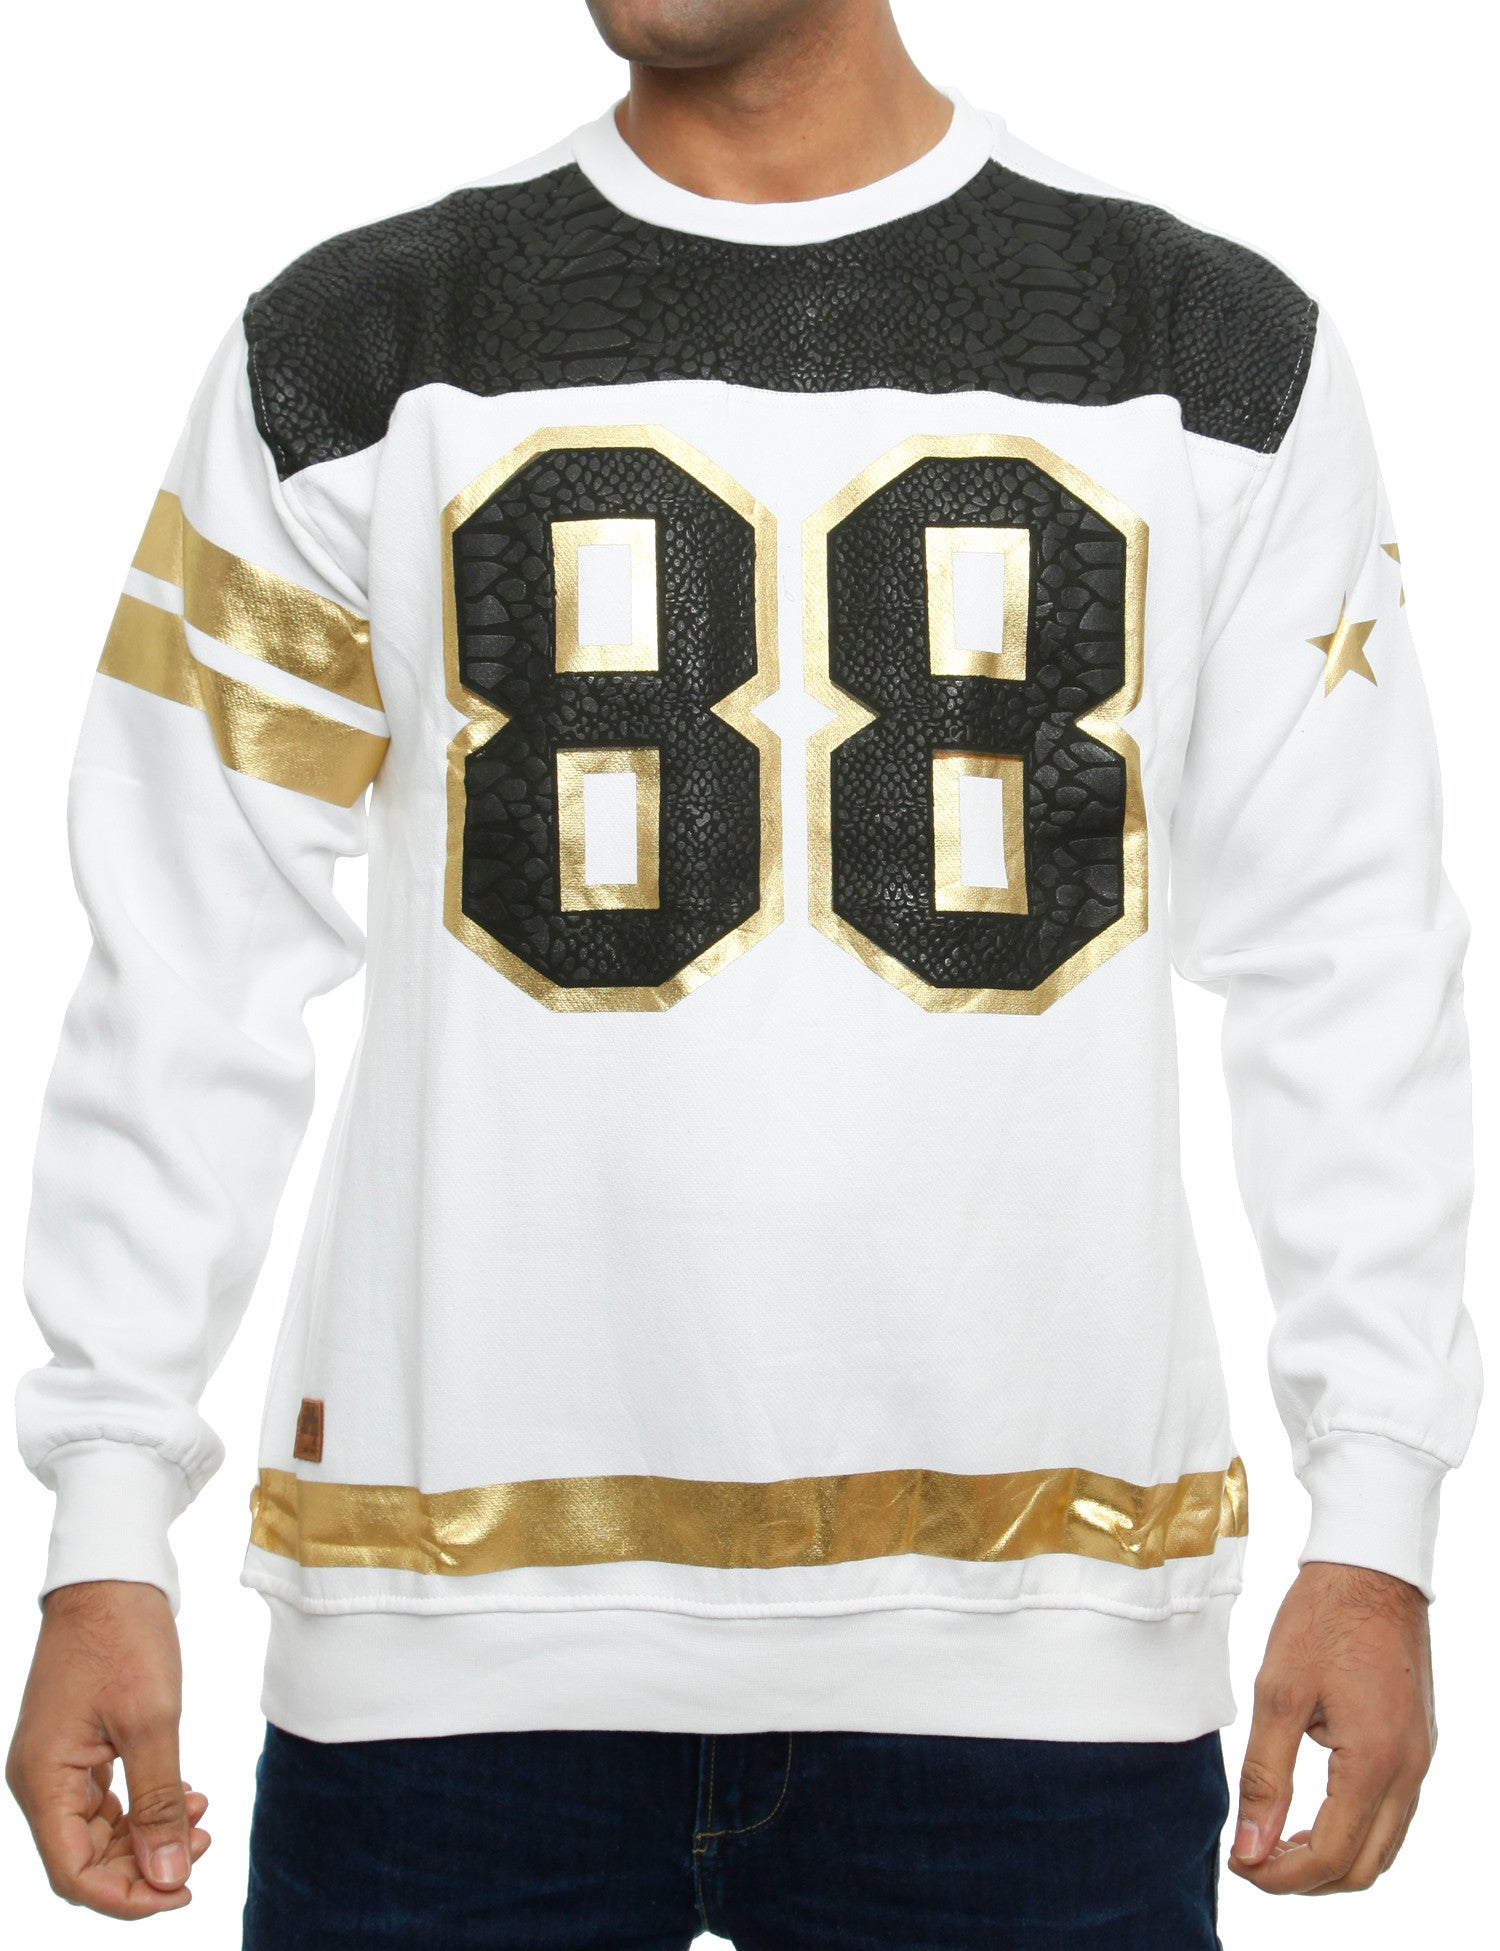 Imperious 88 Sweatshirt CS59 White